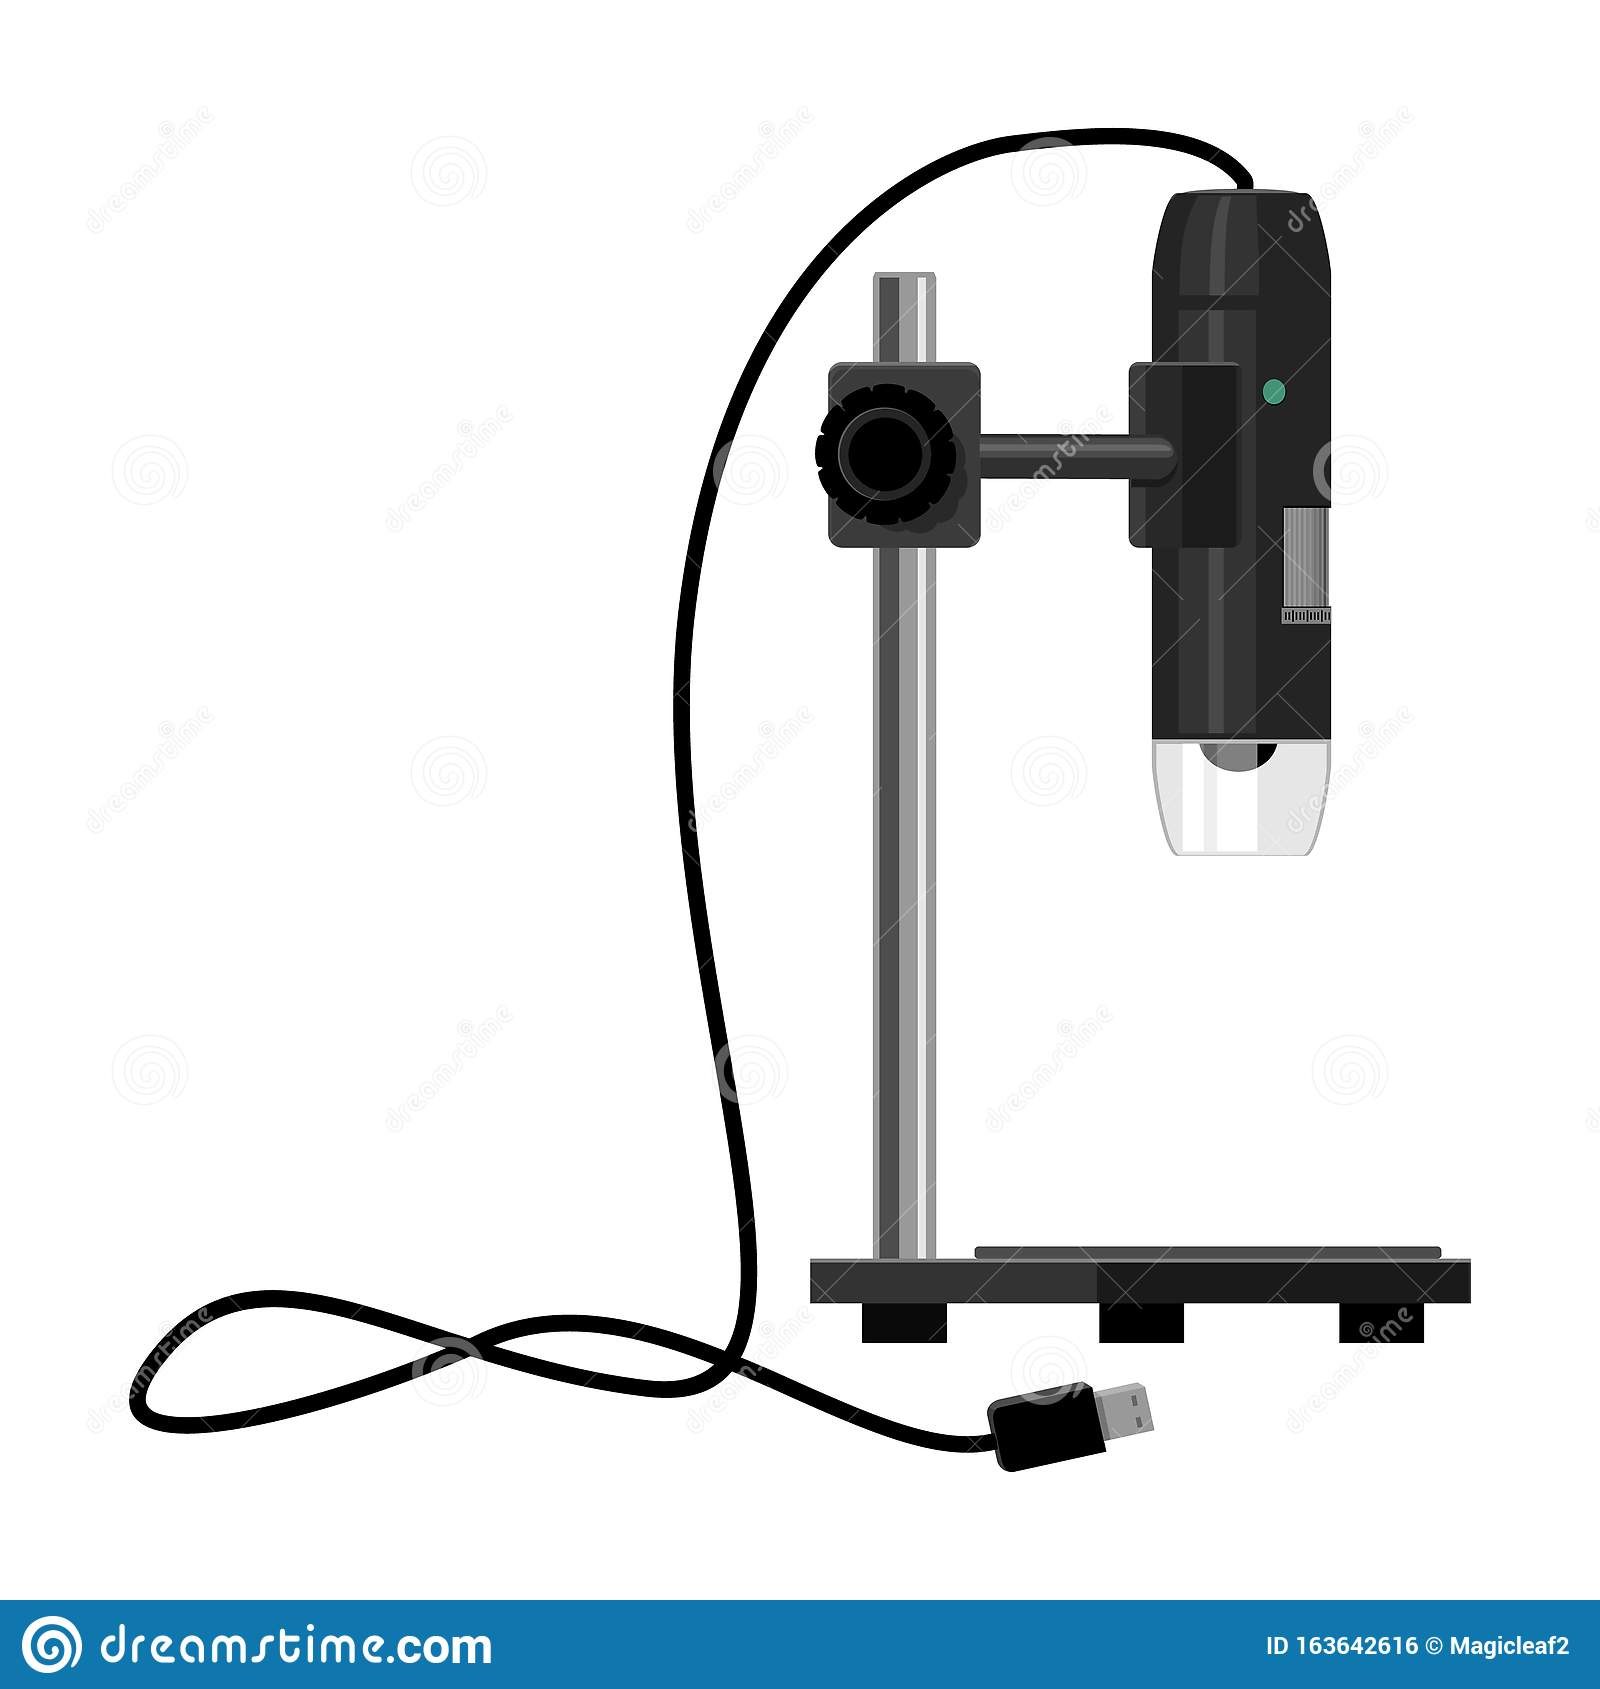 laboratory microscope vector icon cartoon vector icon isolated on white background laboratory microscope stock vector illustration of infection isolated 163642616 dreamstime com